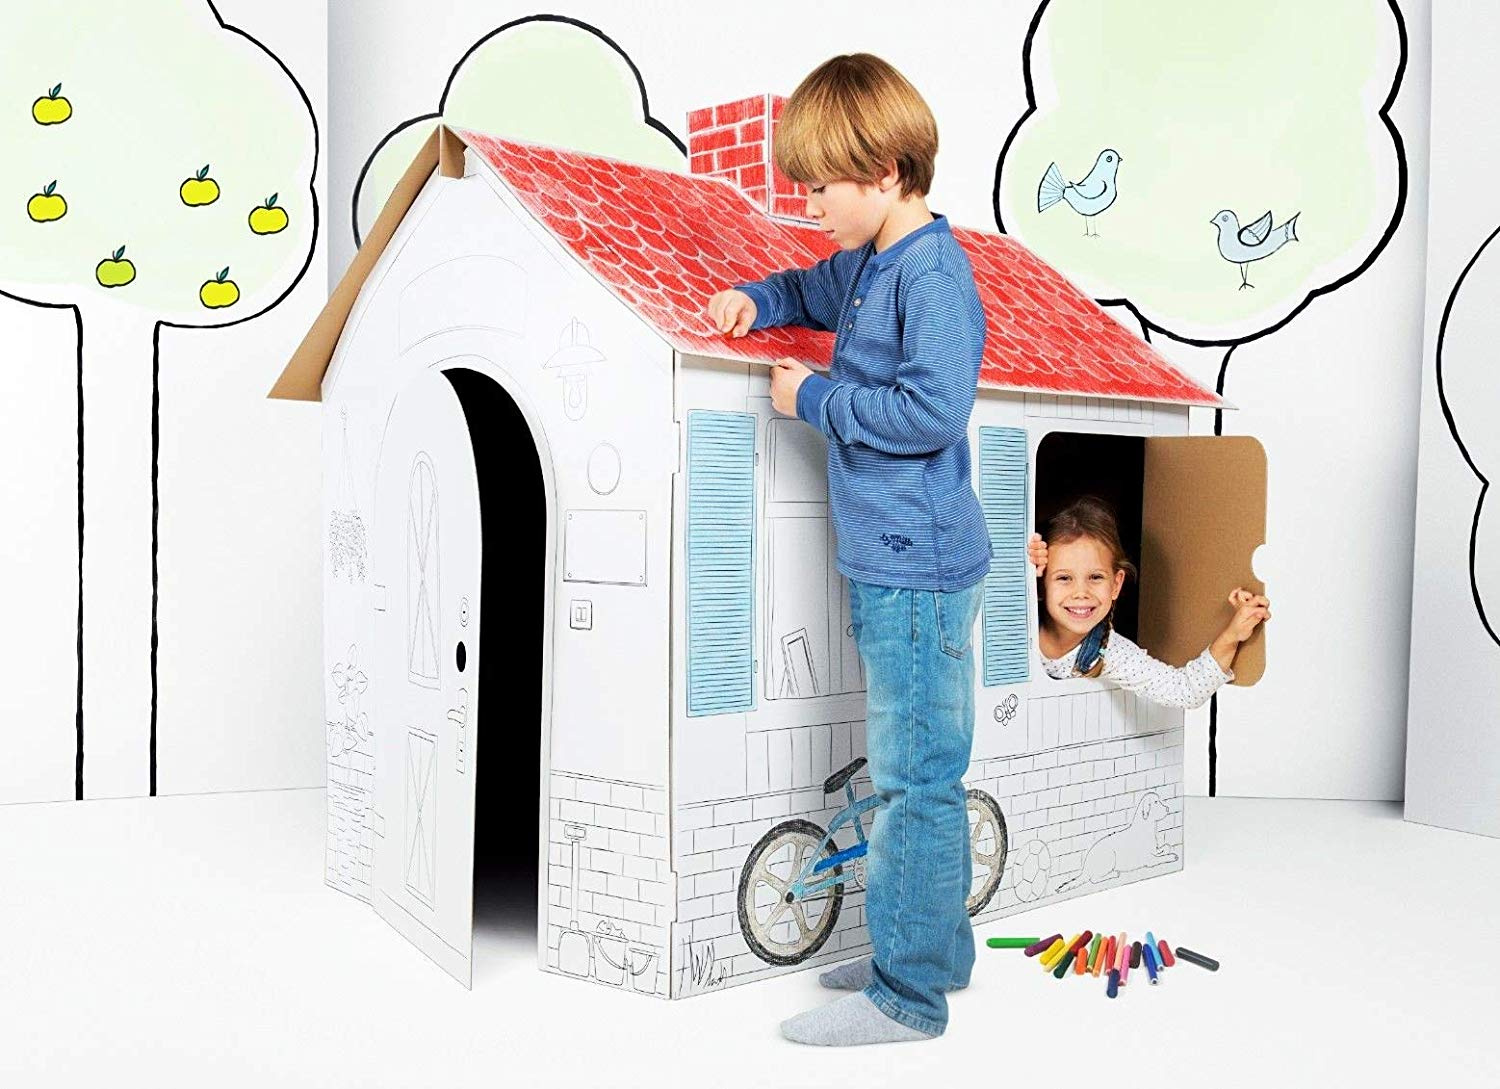 Kids Cardboard Playhouse Colouring Your Own House Toy For Children XL Size Play House Made From Strong And Durable Cardboard